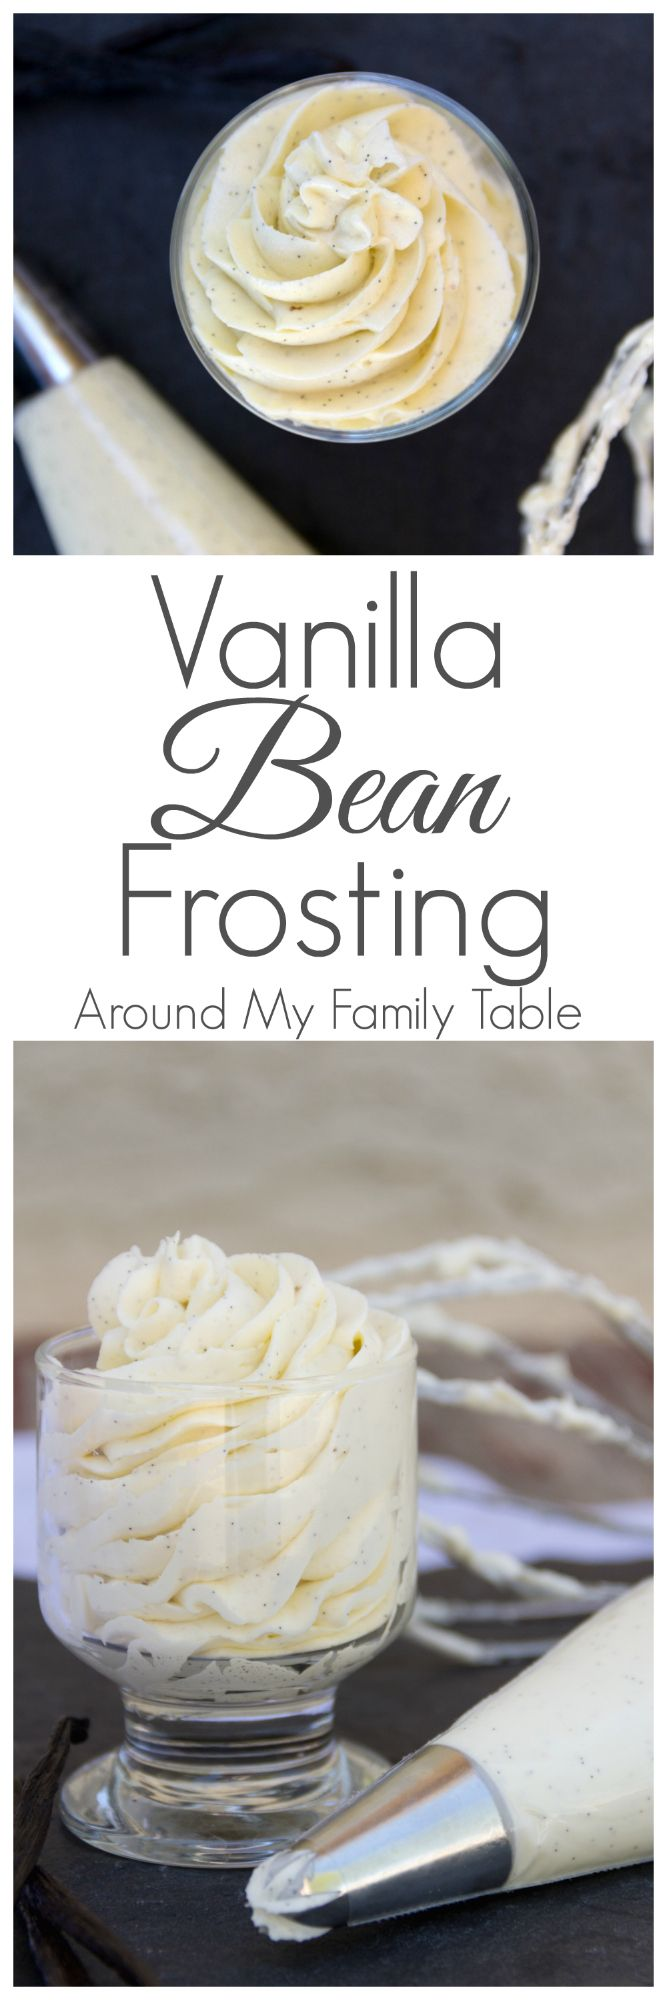 Adding real vanilla beans to delicious buttercream frosting makes a truly scrumptious Vanilla Bean Frosting that you'll love using over and over again.